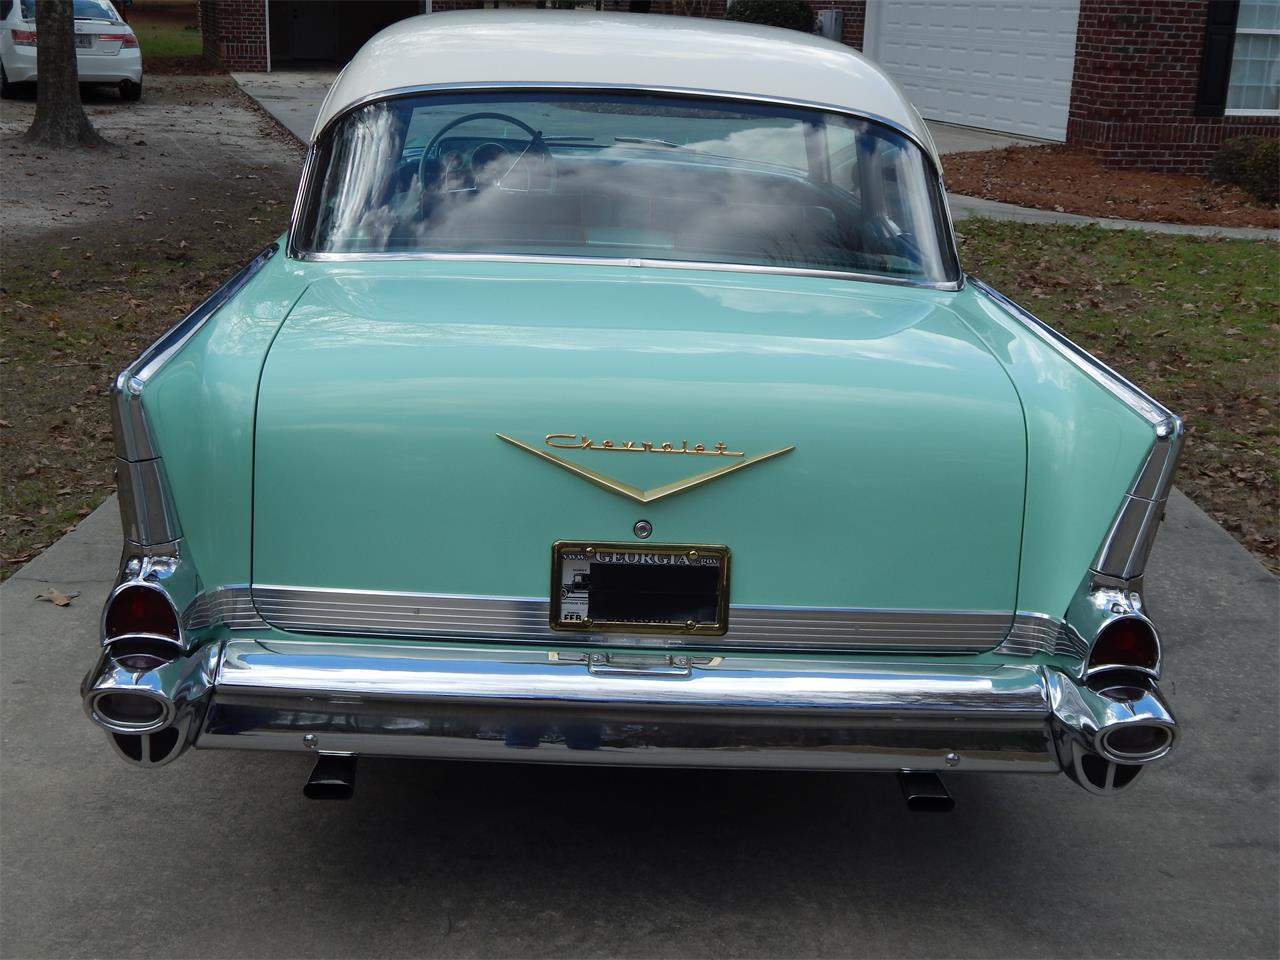 1957 Chevrolet Bel Air for sale in Online, Online Auction – photo 22